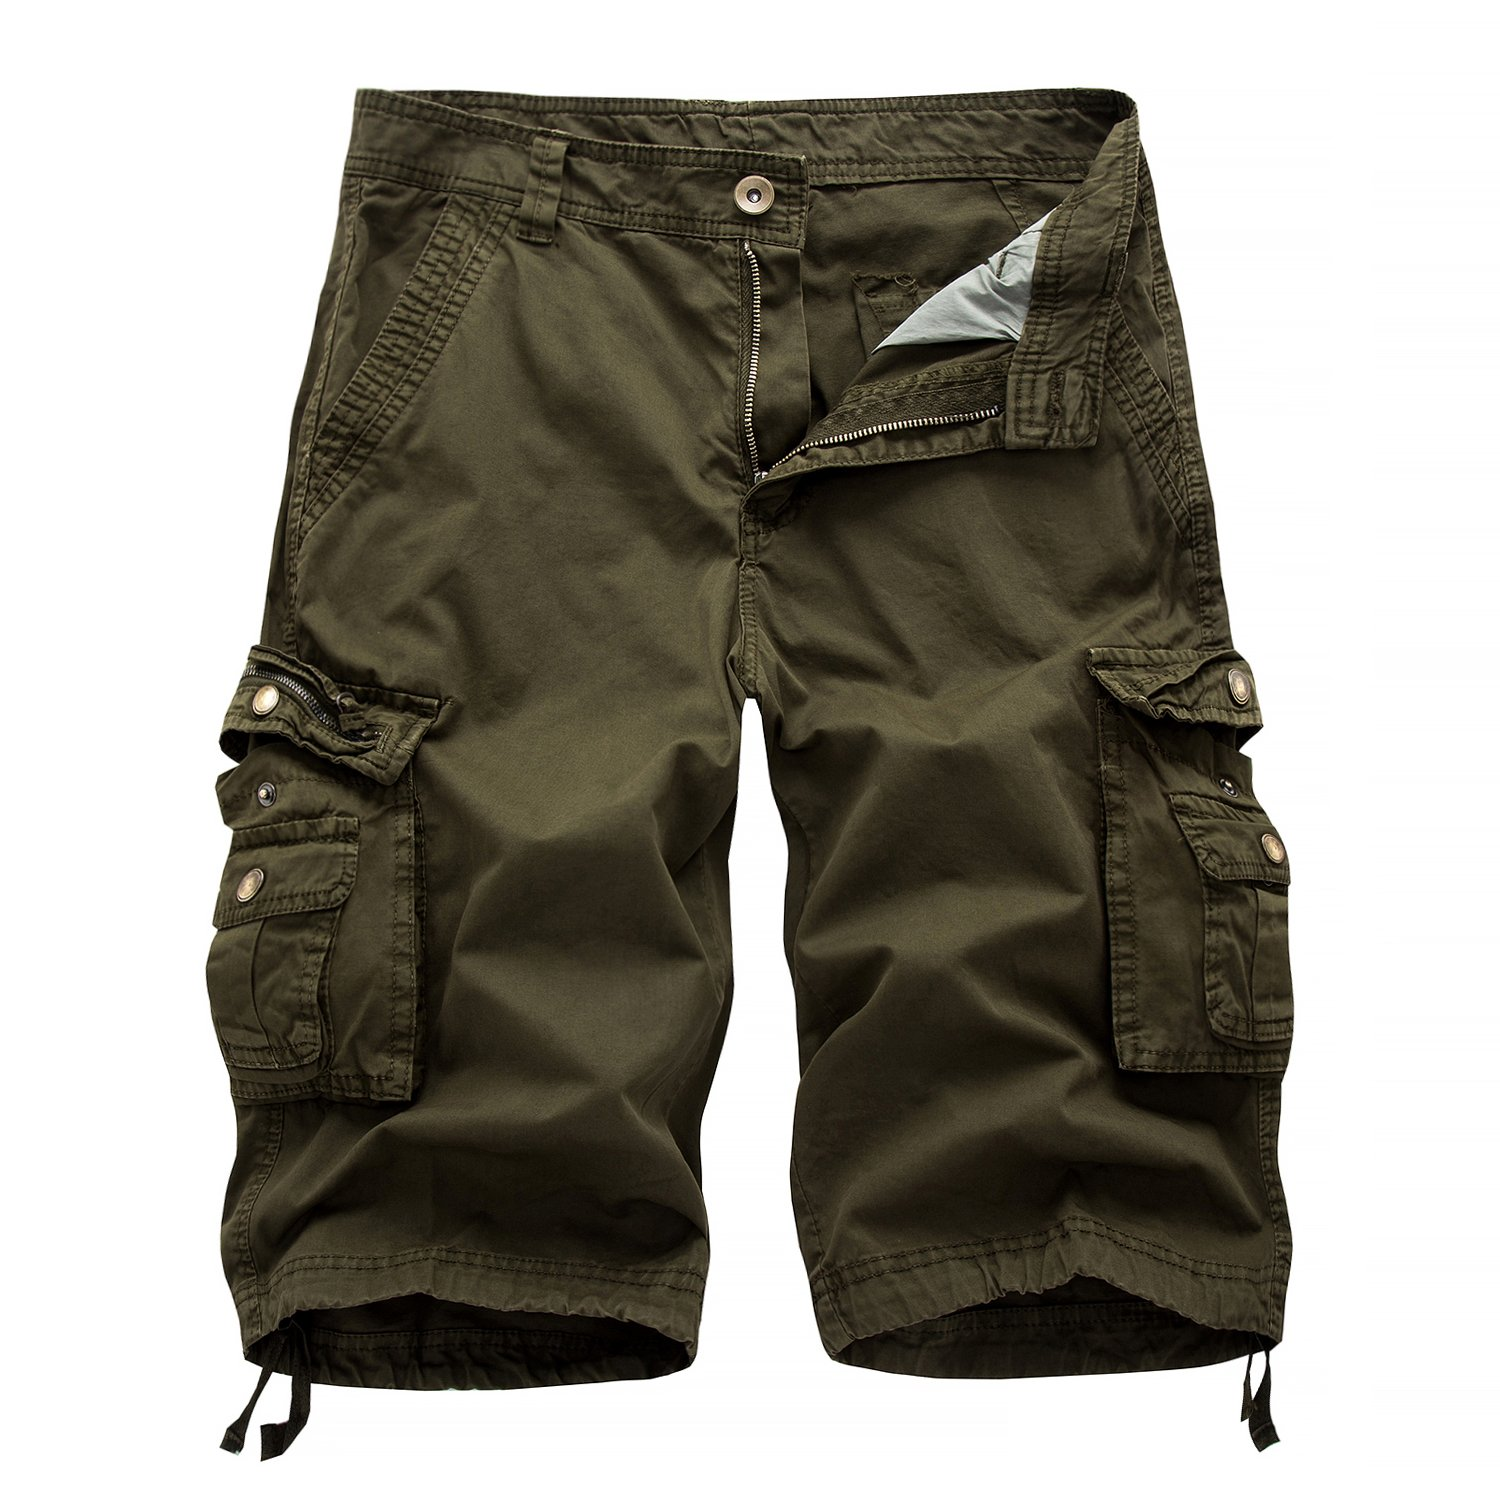 Hycsen Men's Casual Loose Fit Cargo Shorts, Straight Multi-Pocket Cotton Outdoor Wear-Army Green-36